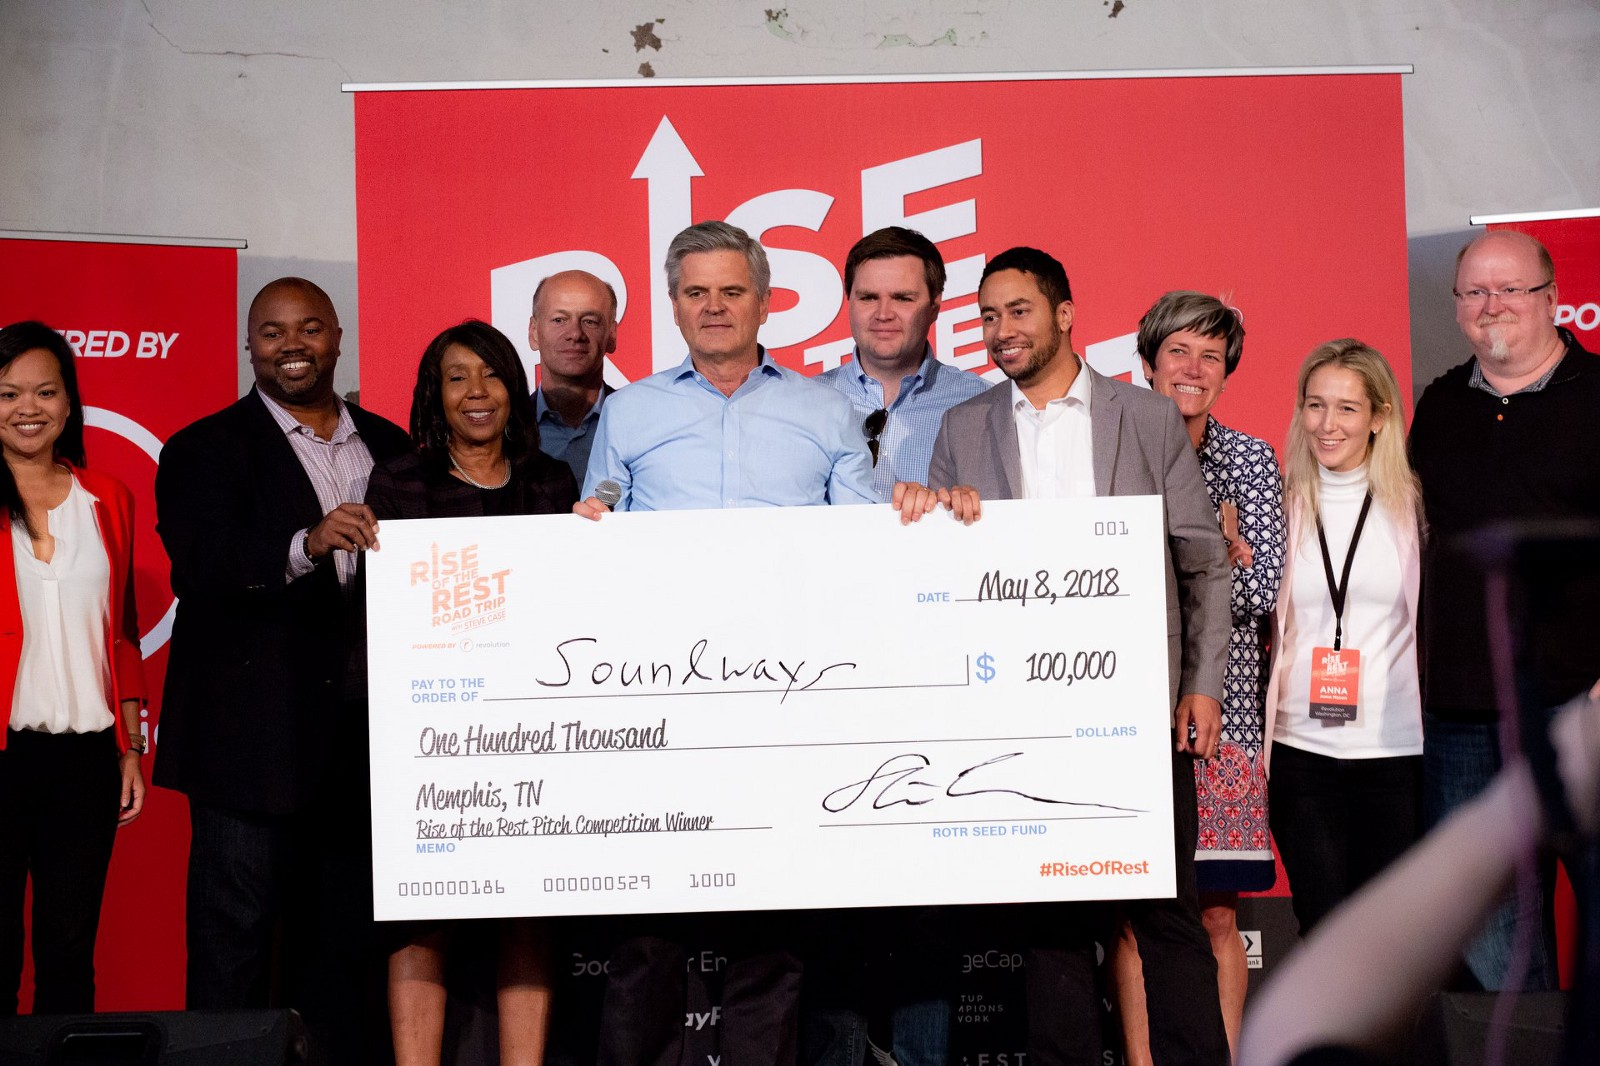 Rise of the Rest Road Trip Orlando Startup Pitch Competition